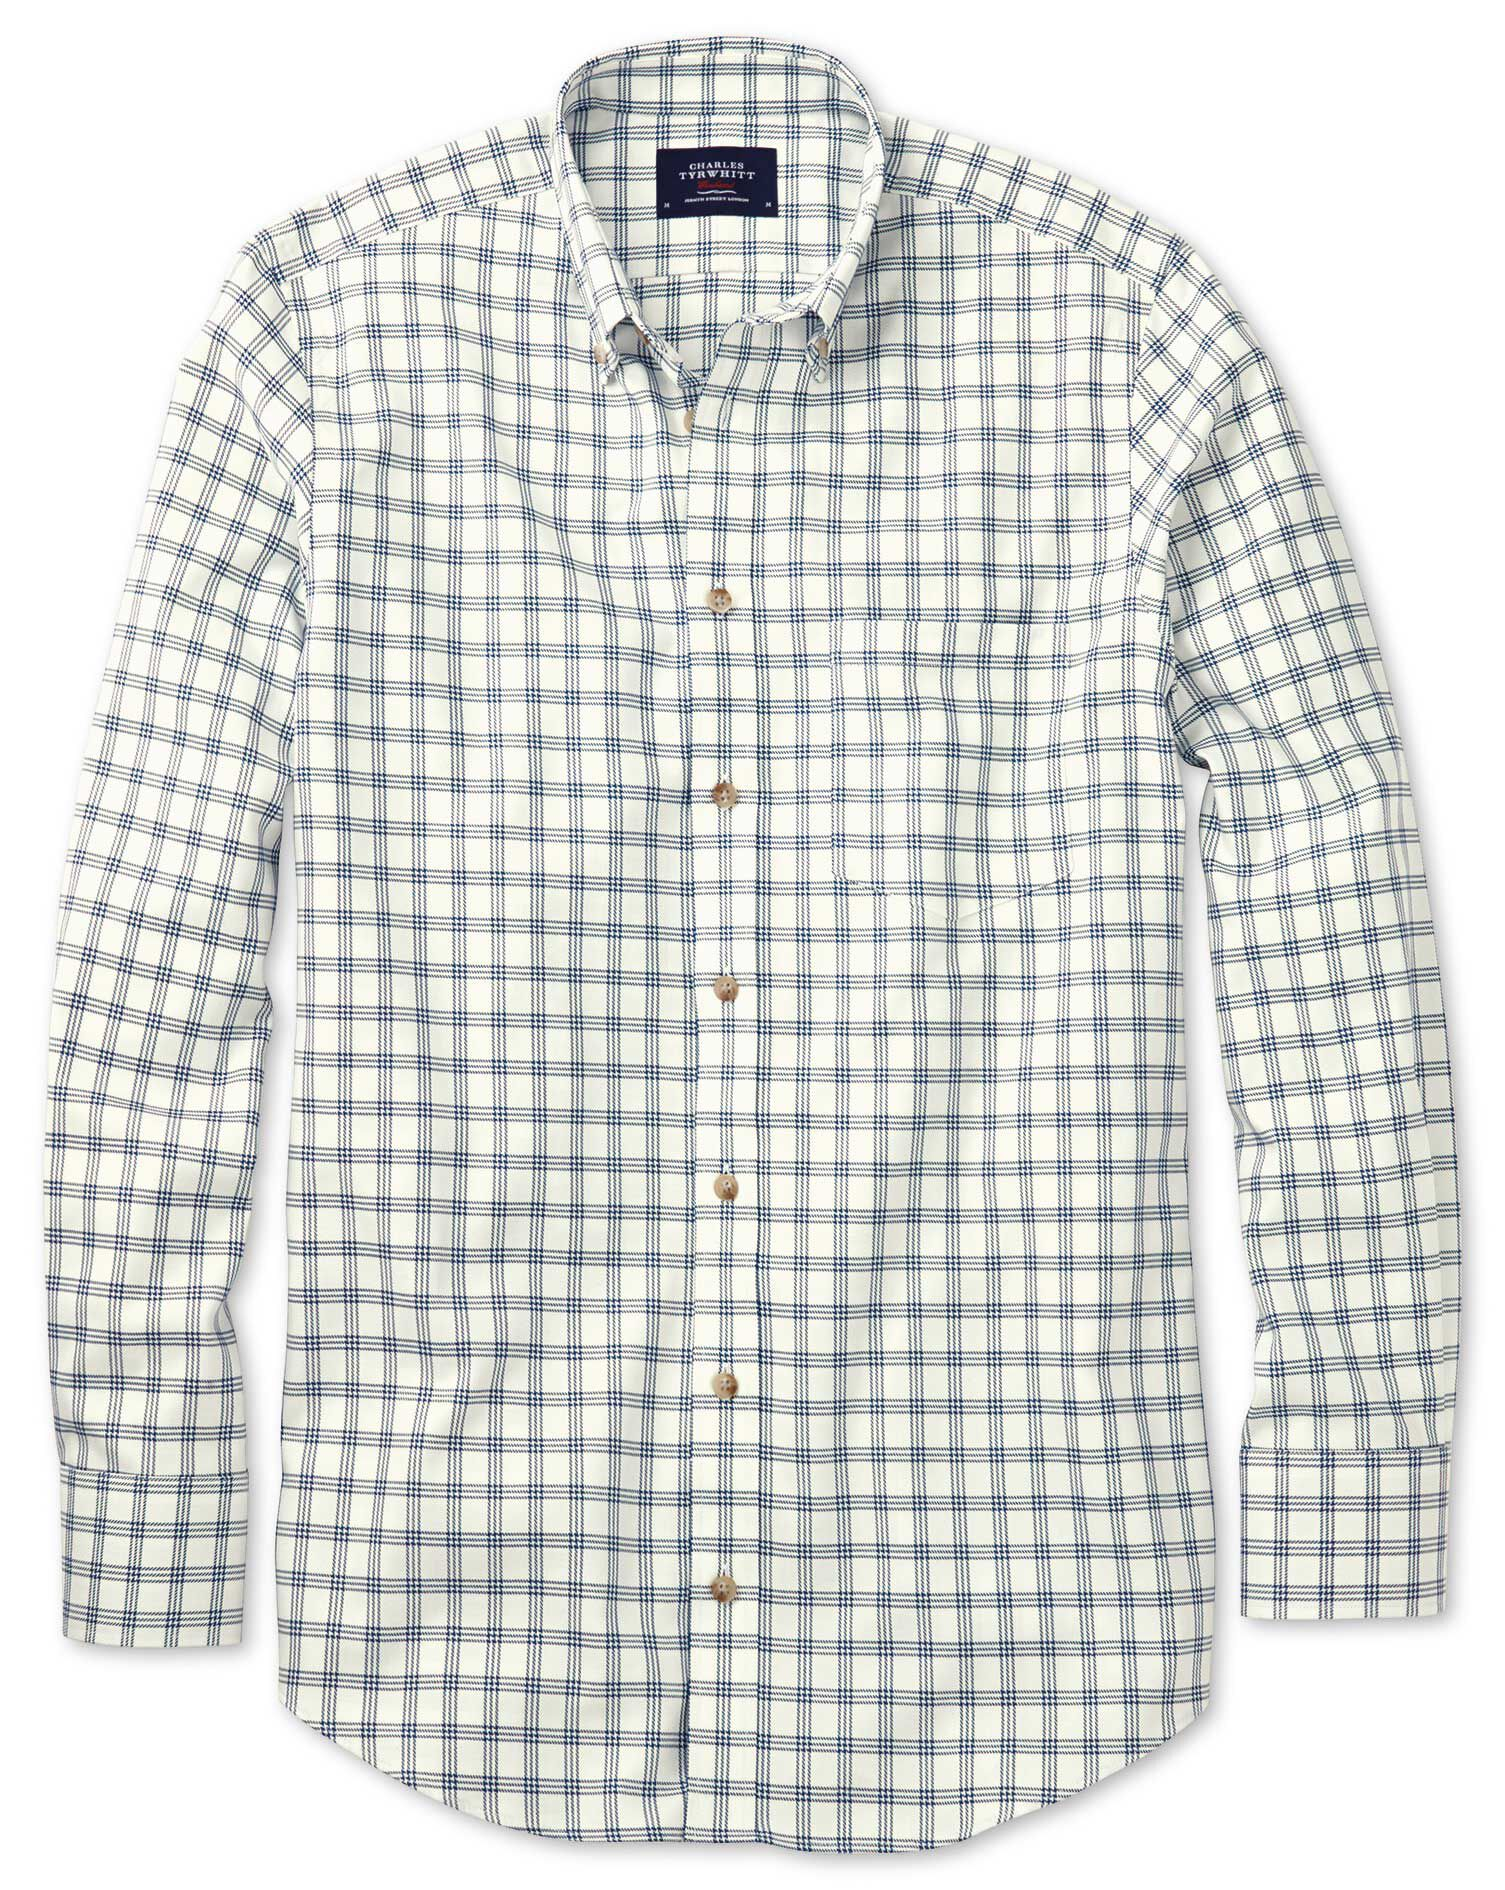 Classic Fit Non-Iron Windowpane Check White and Navy Cotton Shirt Single Cuff Size Large by Charles